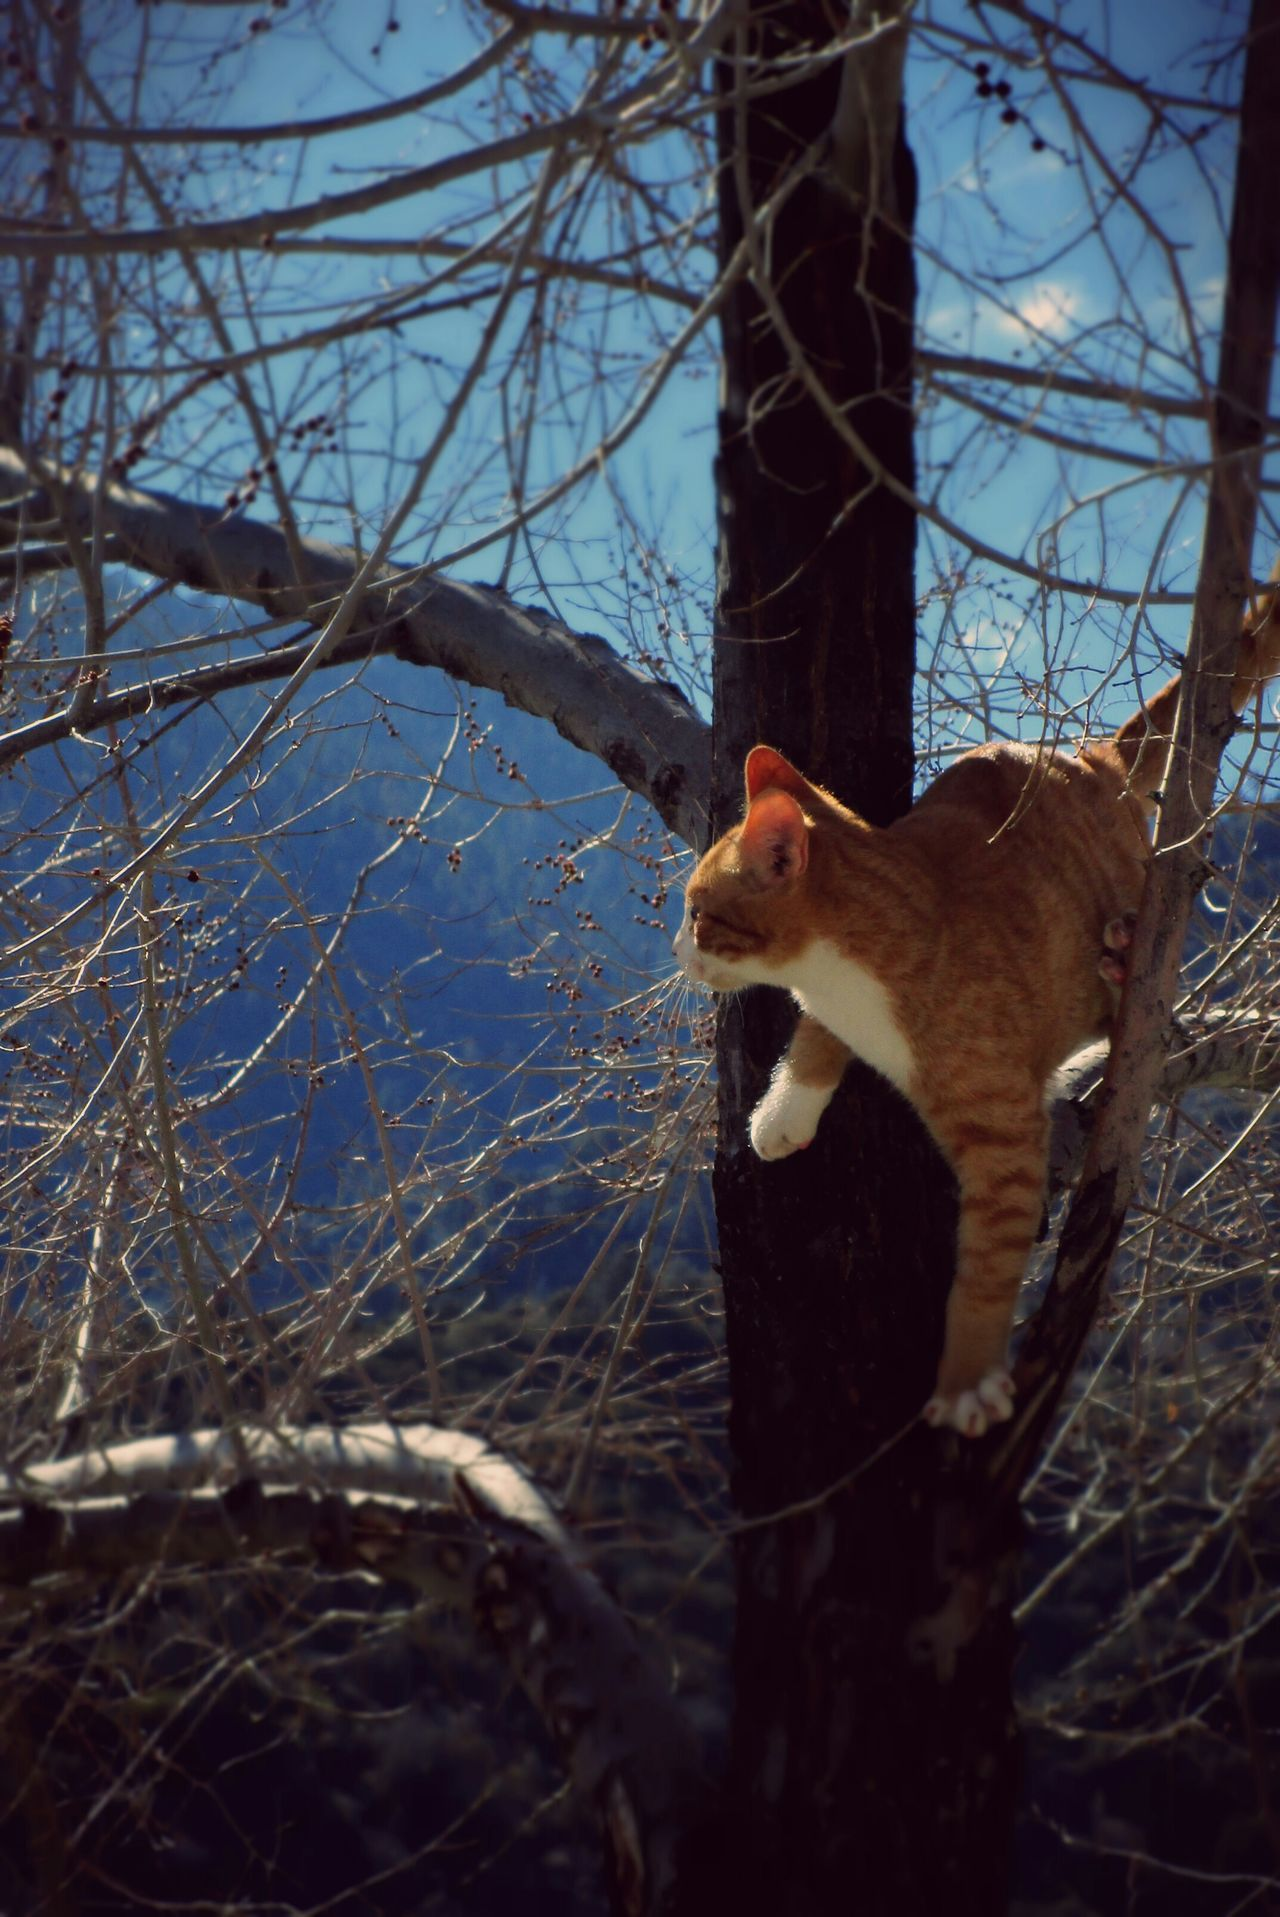 I Love My Cat Treegasmic Tuesday Wanderlust Wednesday Hugging A Tree Hanging Out EyeEm Nature Lover Pets Corner Cat Kitty The Moment - 2015 EyeEm Awards